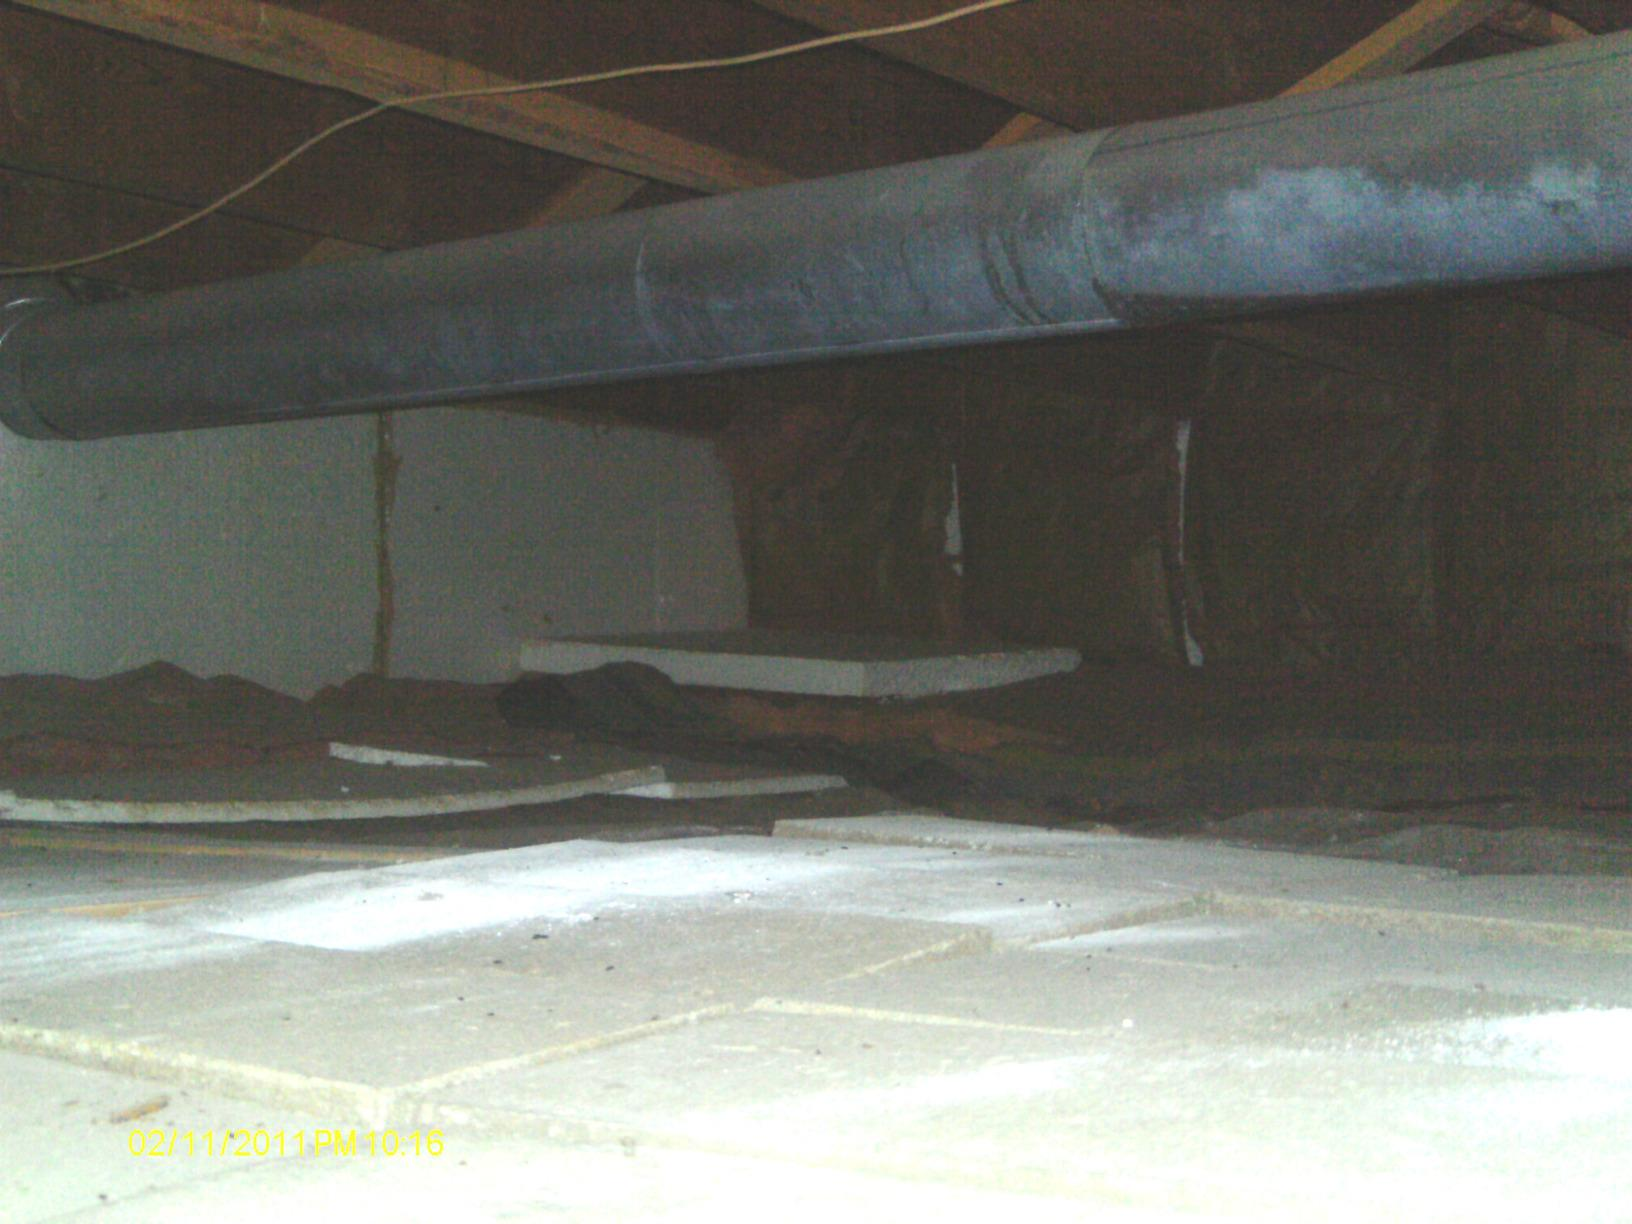 This crawl space was dirty, damp and drafty.